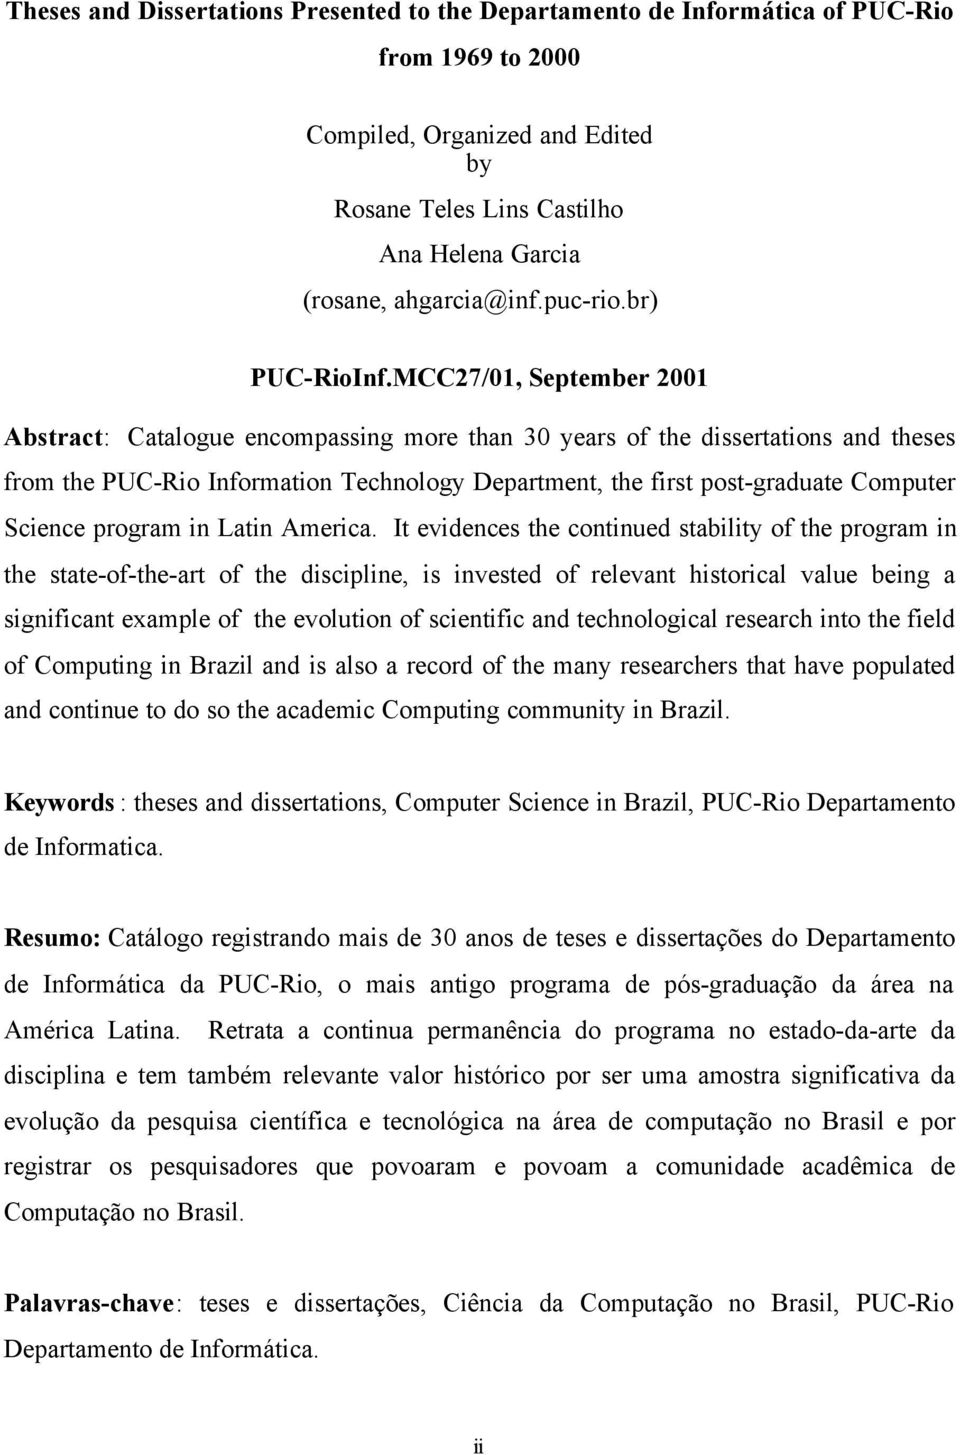 MCC27/01, September 2001 Abstract: Catalogue encompassing more than 30 years of the dissertations and theses from the PUC-Rio Information Technology Department, the first post-graduate Computer